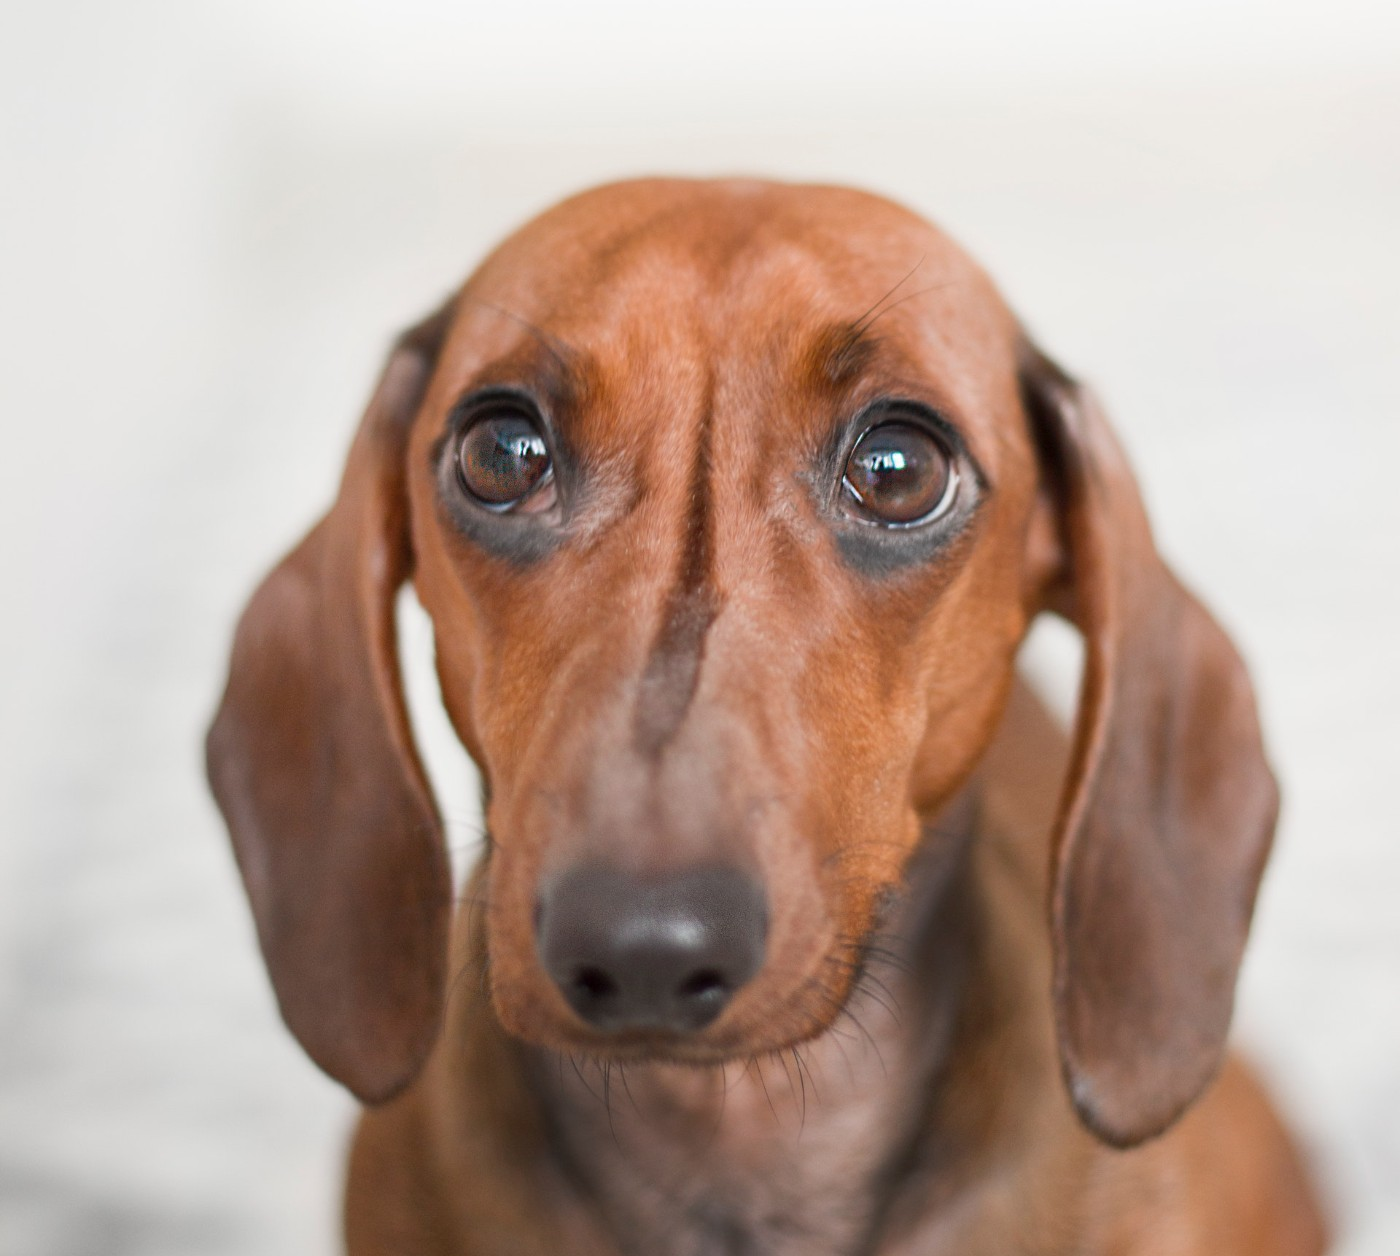 scared dog Causes of anxiety in dogs